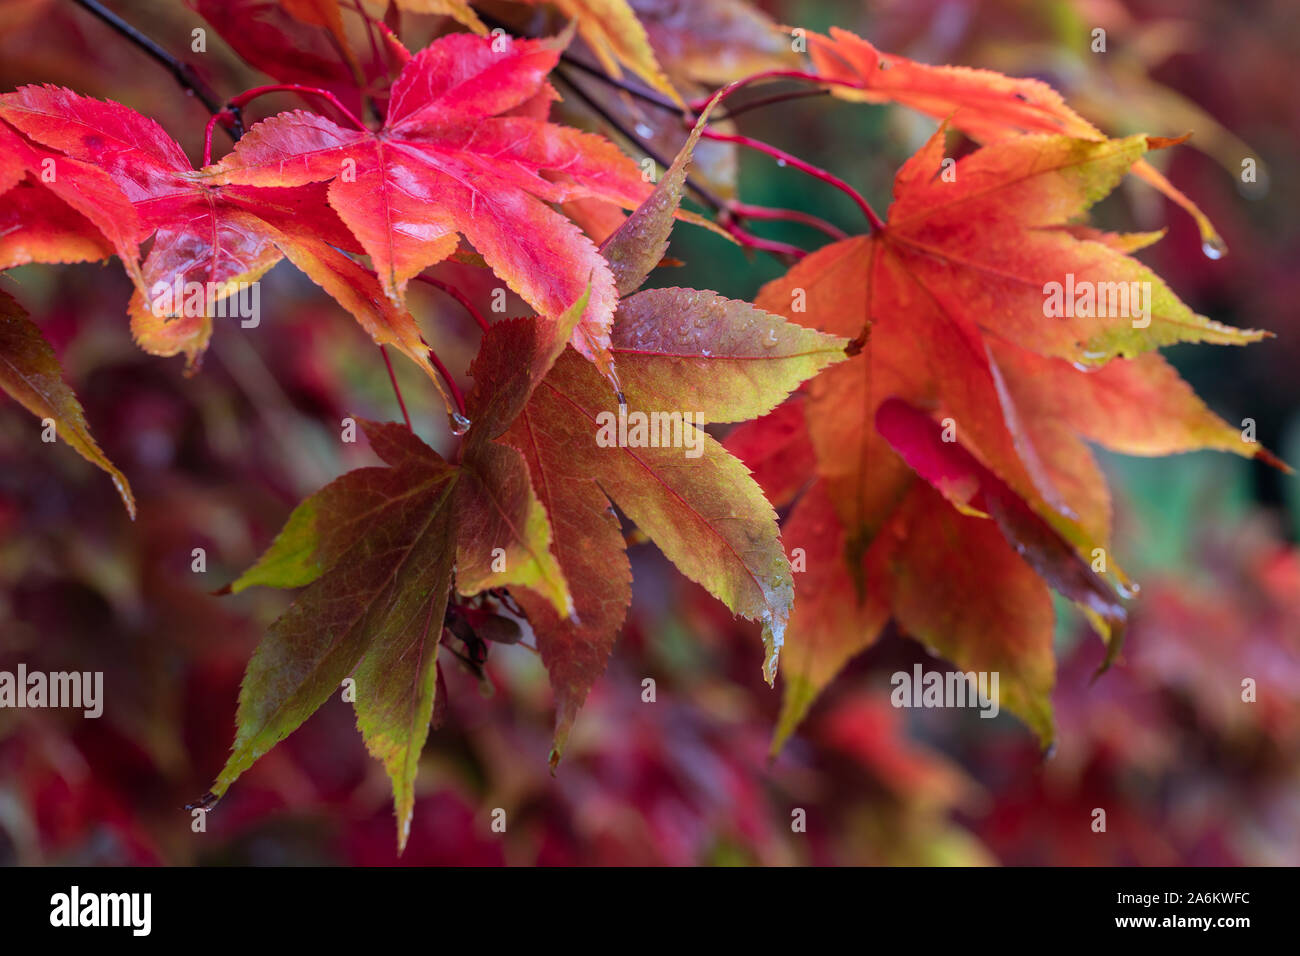 Close up of wet red Acer Palmatum leaves after a shower of rain in autumn at Westonbirt Arboretum, Gloucestershire, England, UK Stock Photo